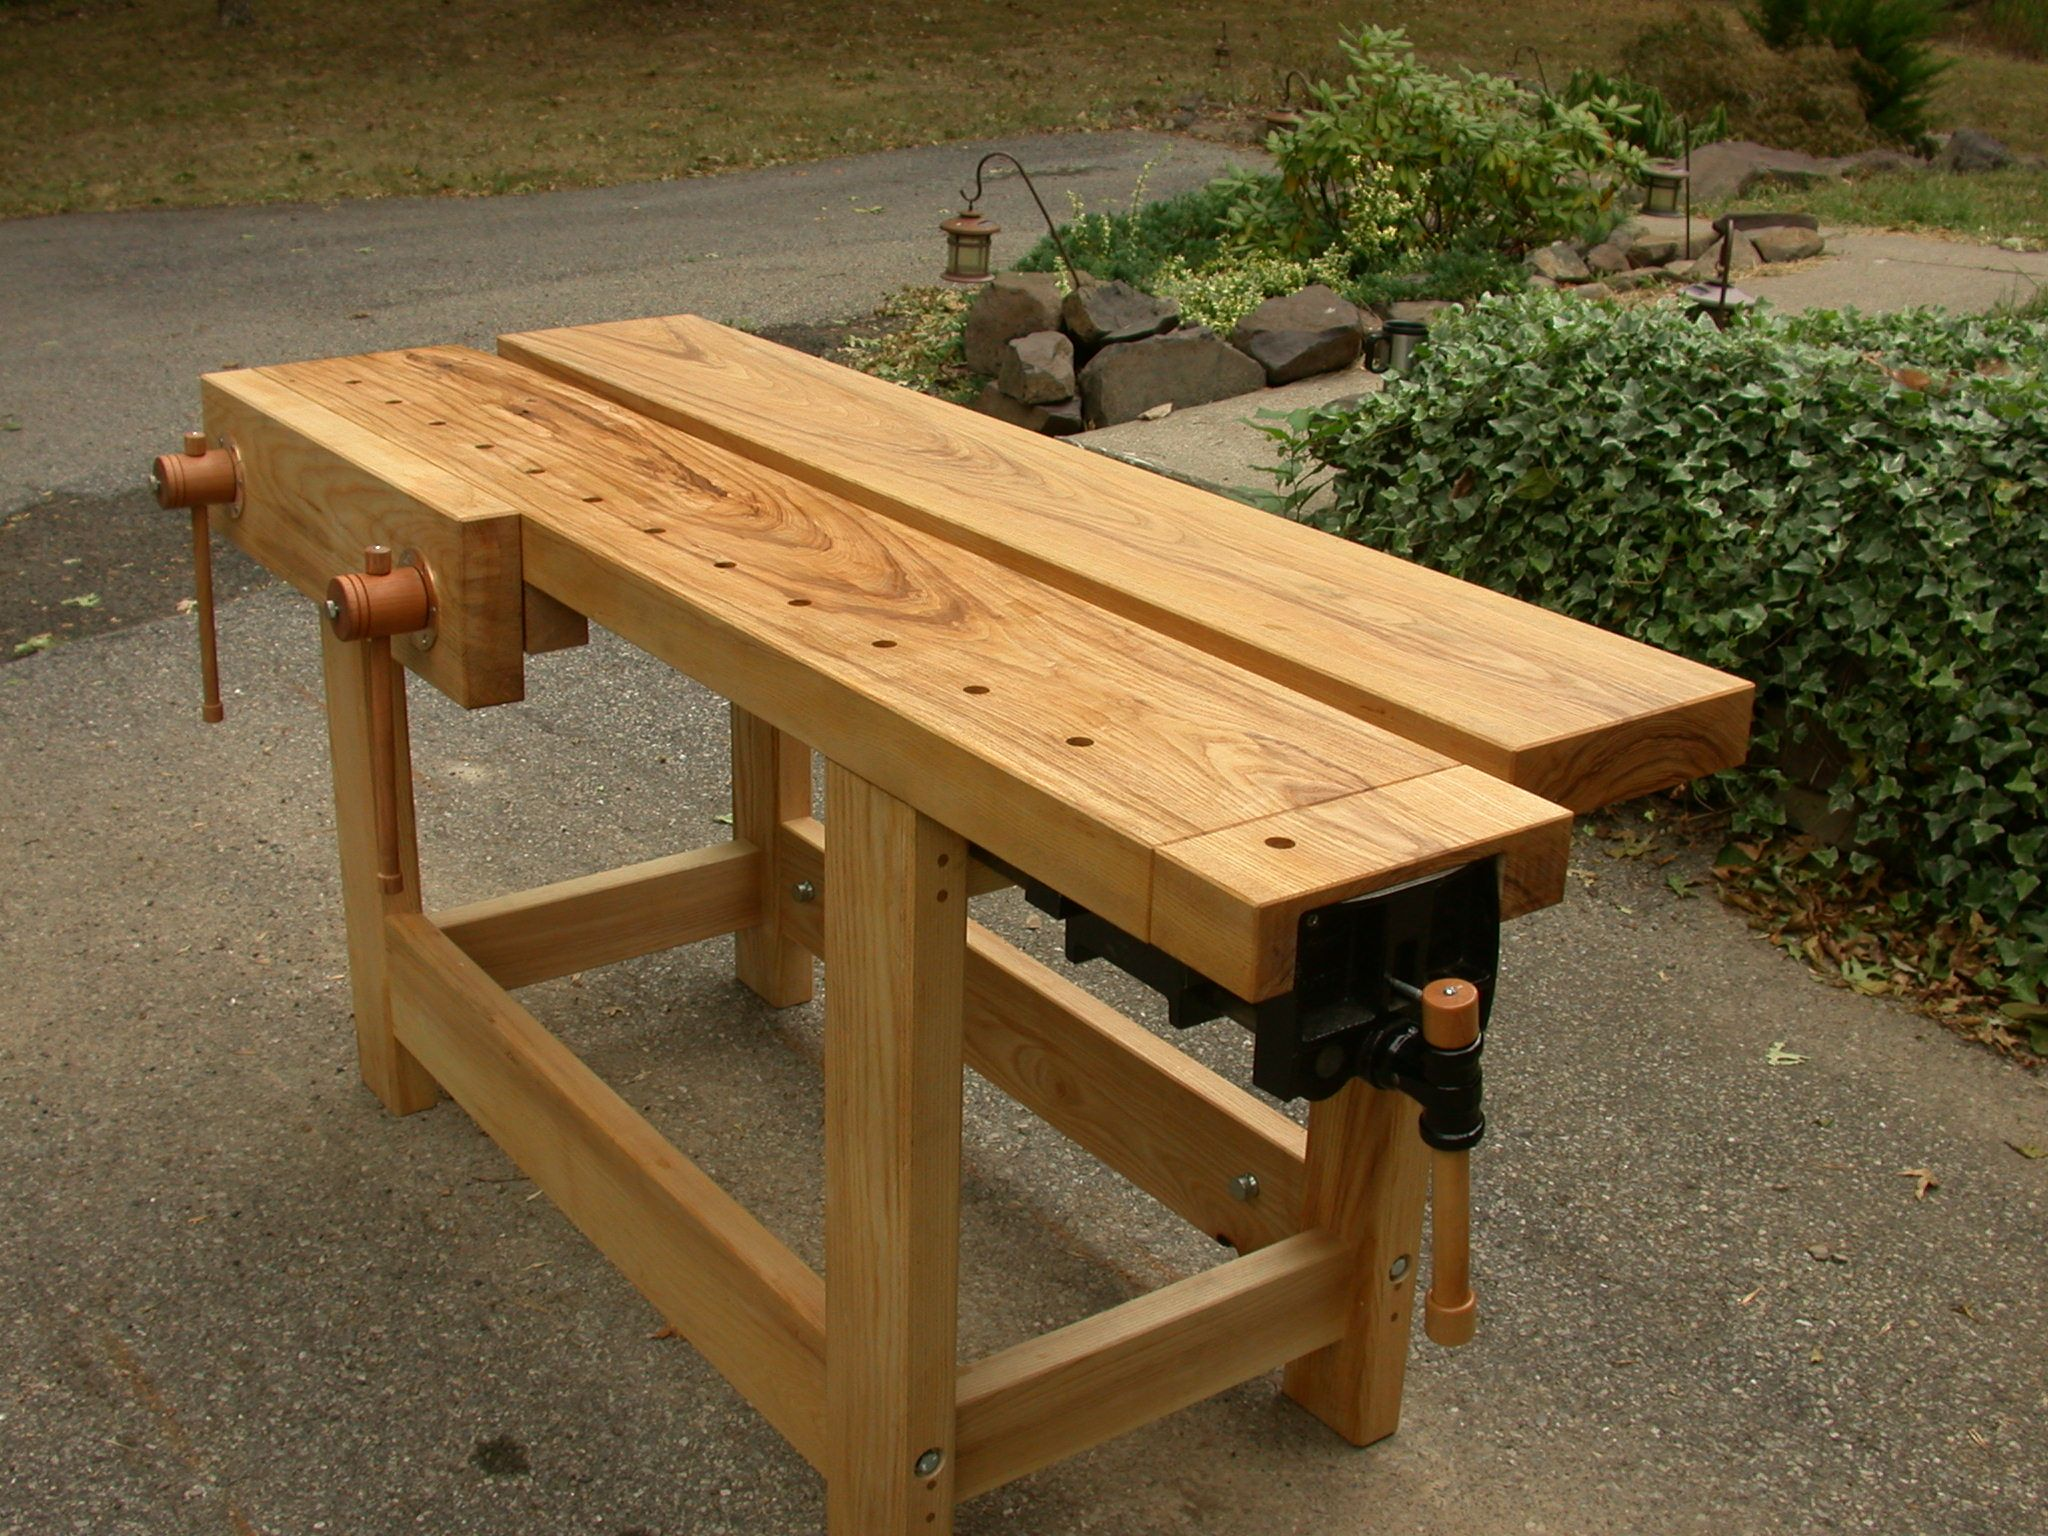 Holtzapfel Bench From Daed Toolworks Workbench Pinterest Woodworking Woods And